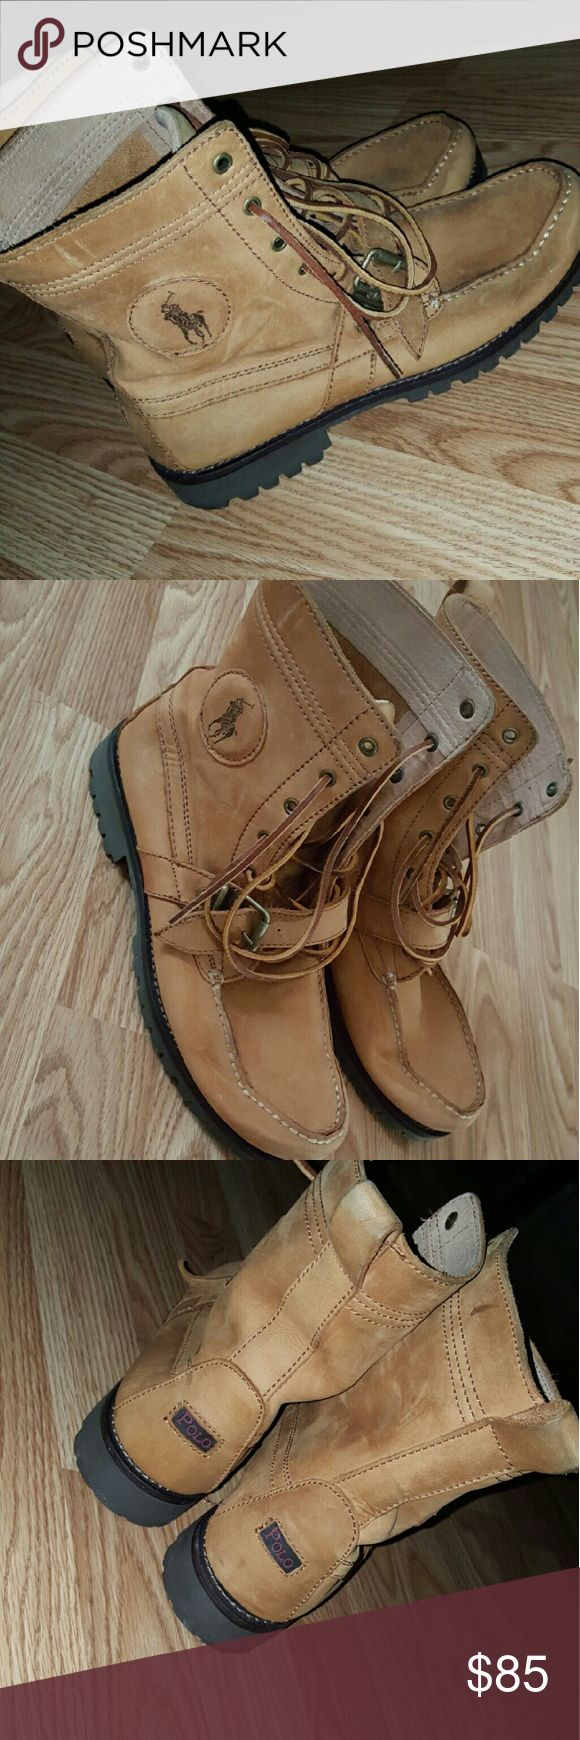 Polo Boots Mens boot Ralph Lauren Shoes Sneakers